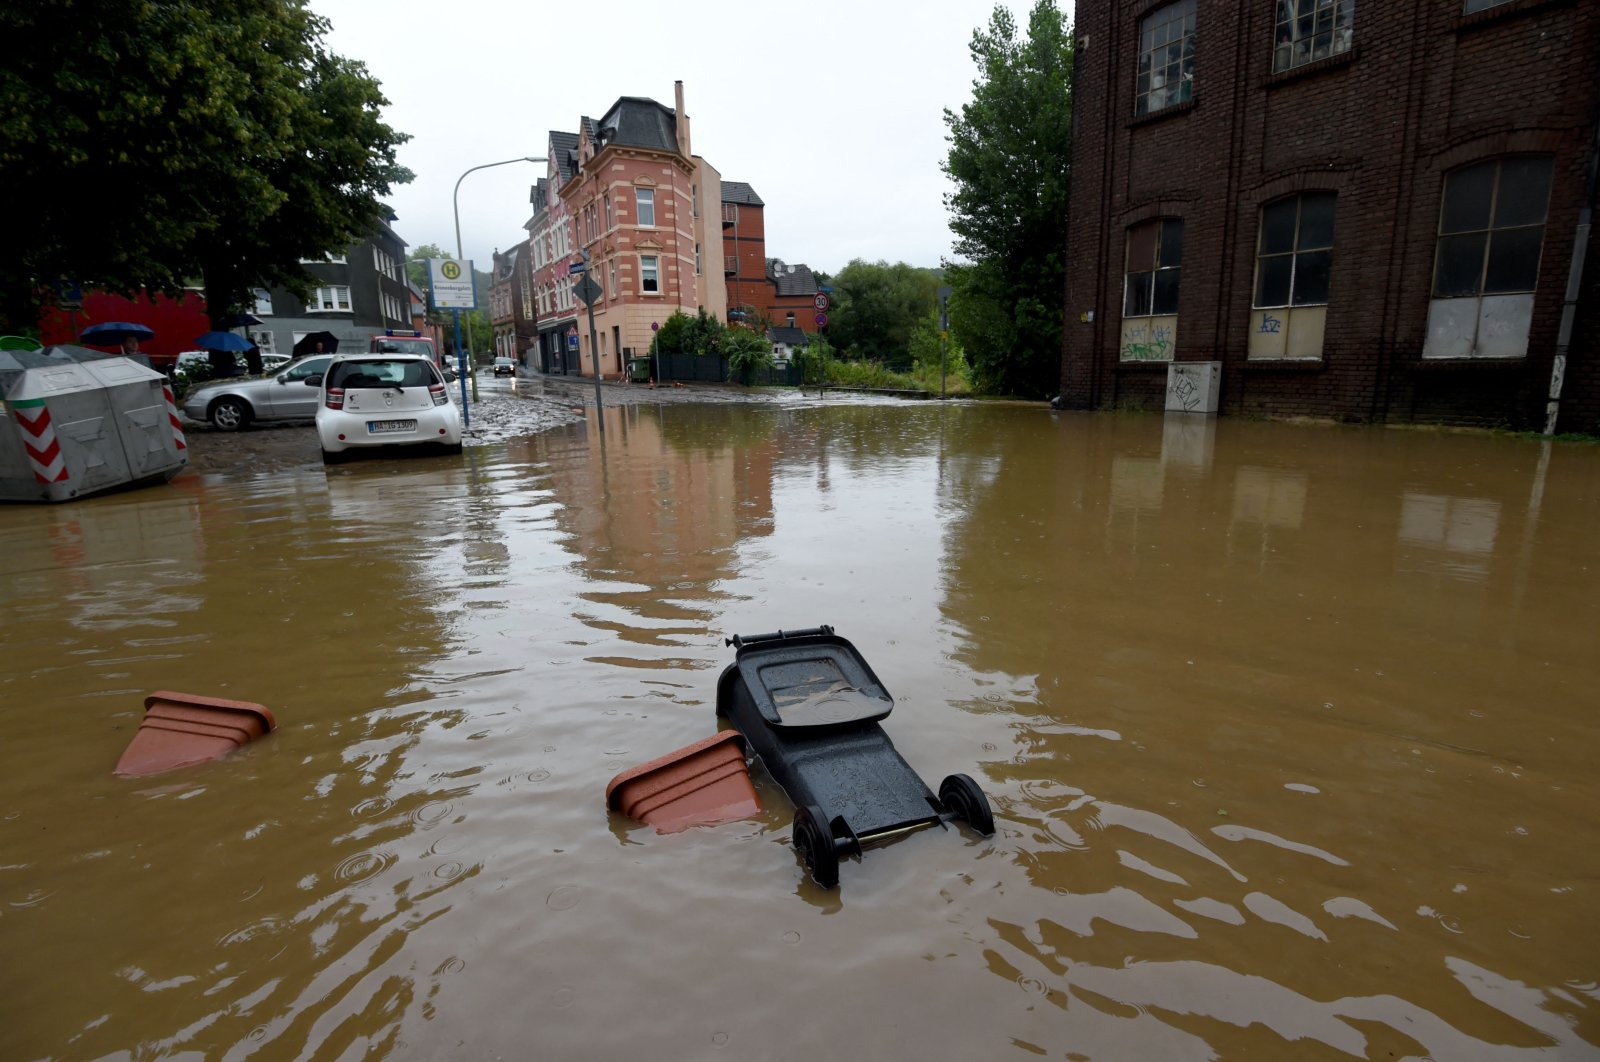 A dustbin and flowerpots float in a flooded street in Hagen, western Germany, July 14, 2021, after heavy rain hit parts of the country, causing widespread flooding. (AFP Photo_